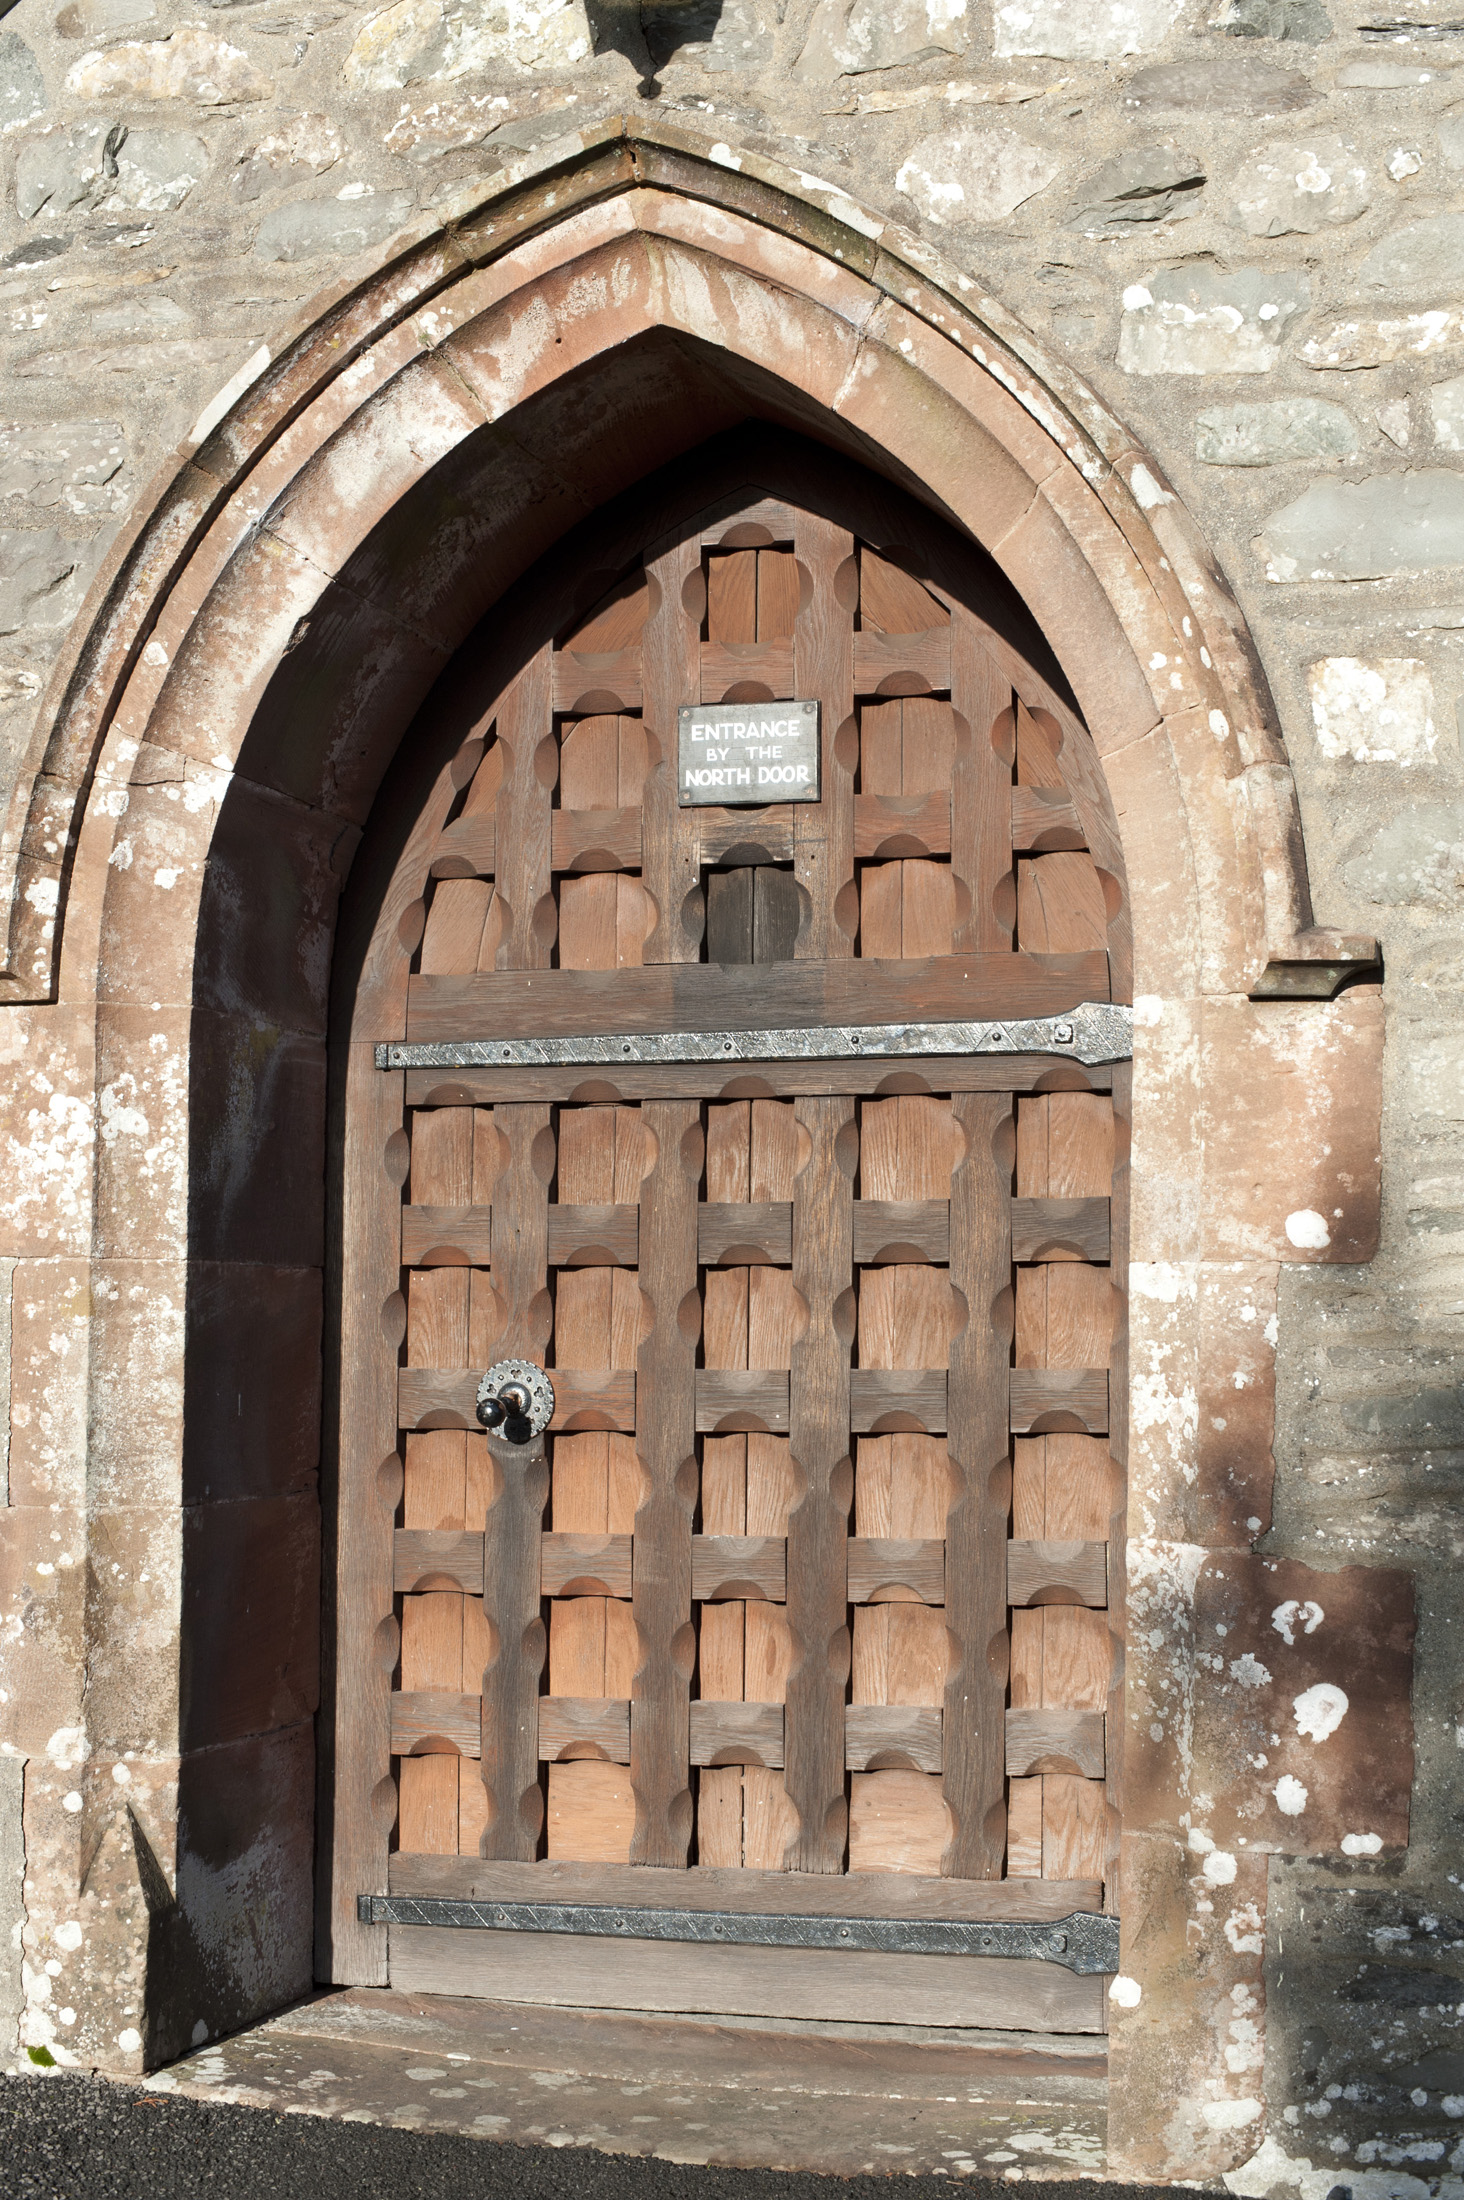 Arched medieval wooden entrance door to St Michaels and All Angels Church in the village of Hawkshead in the Lake District in Cumbria